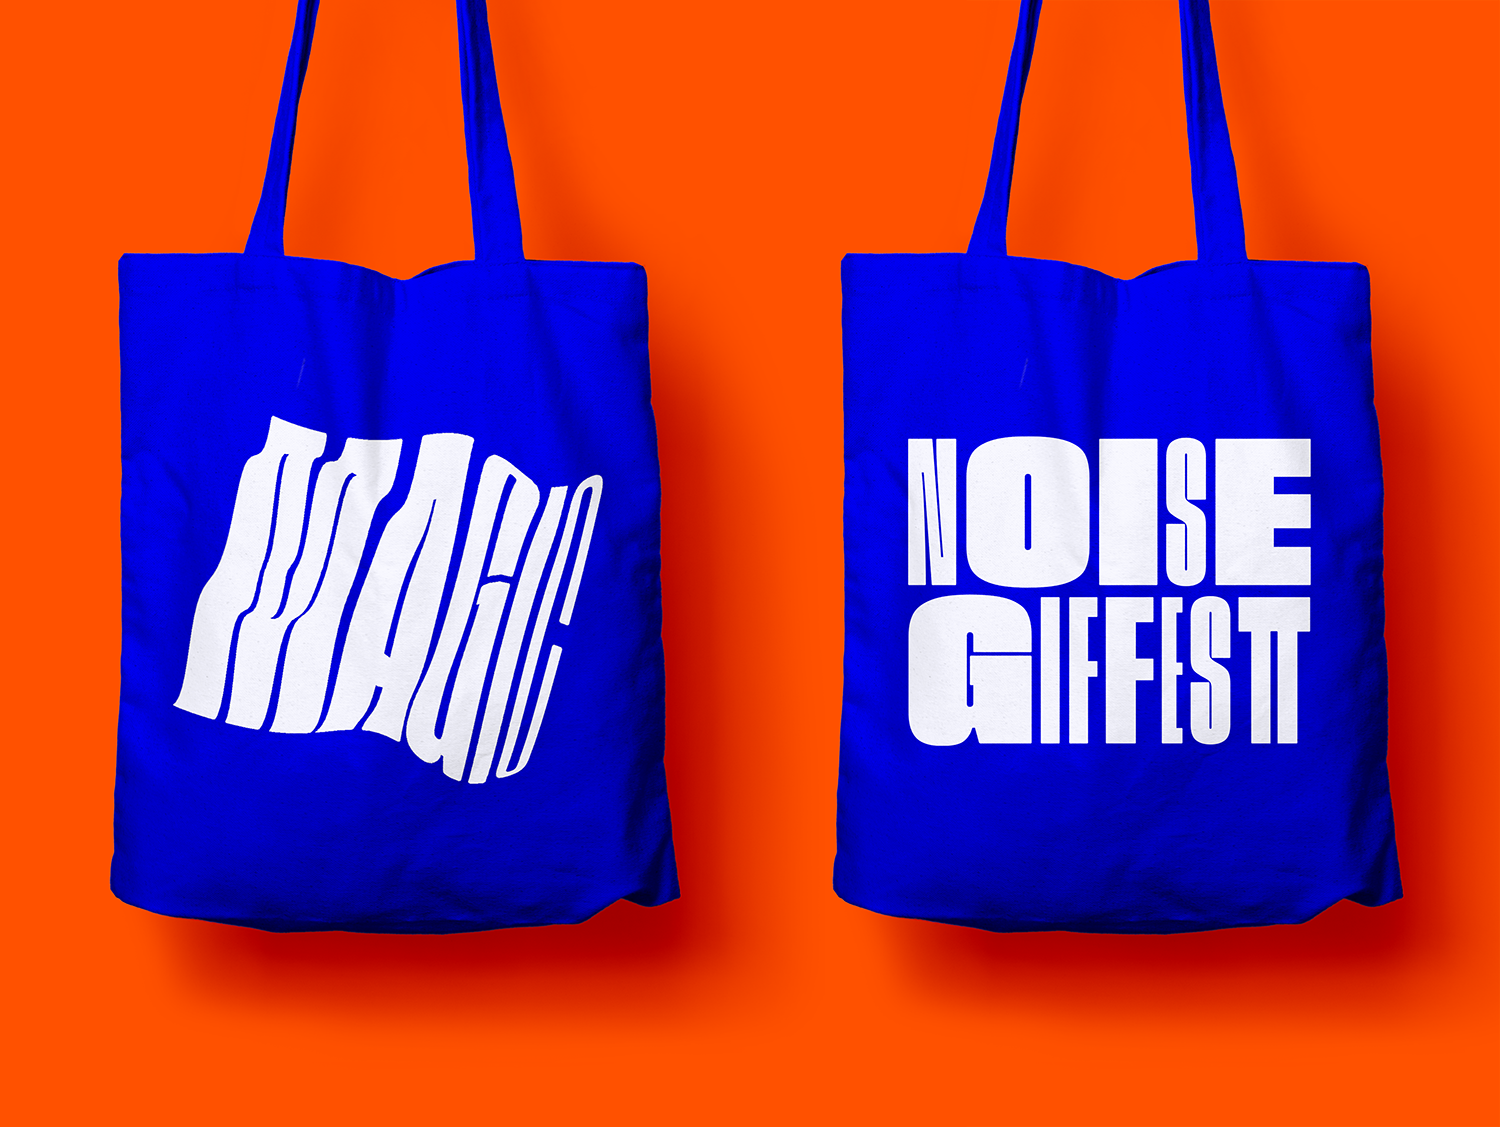 GIF Fest II 2019 branding identity - Event tote bag designs.